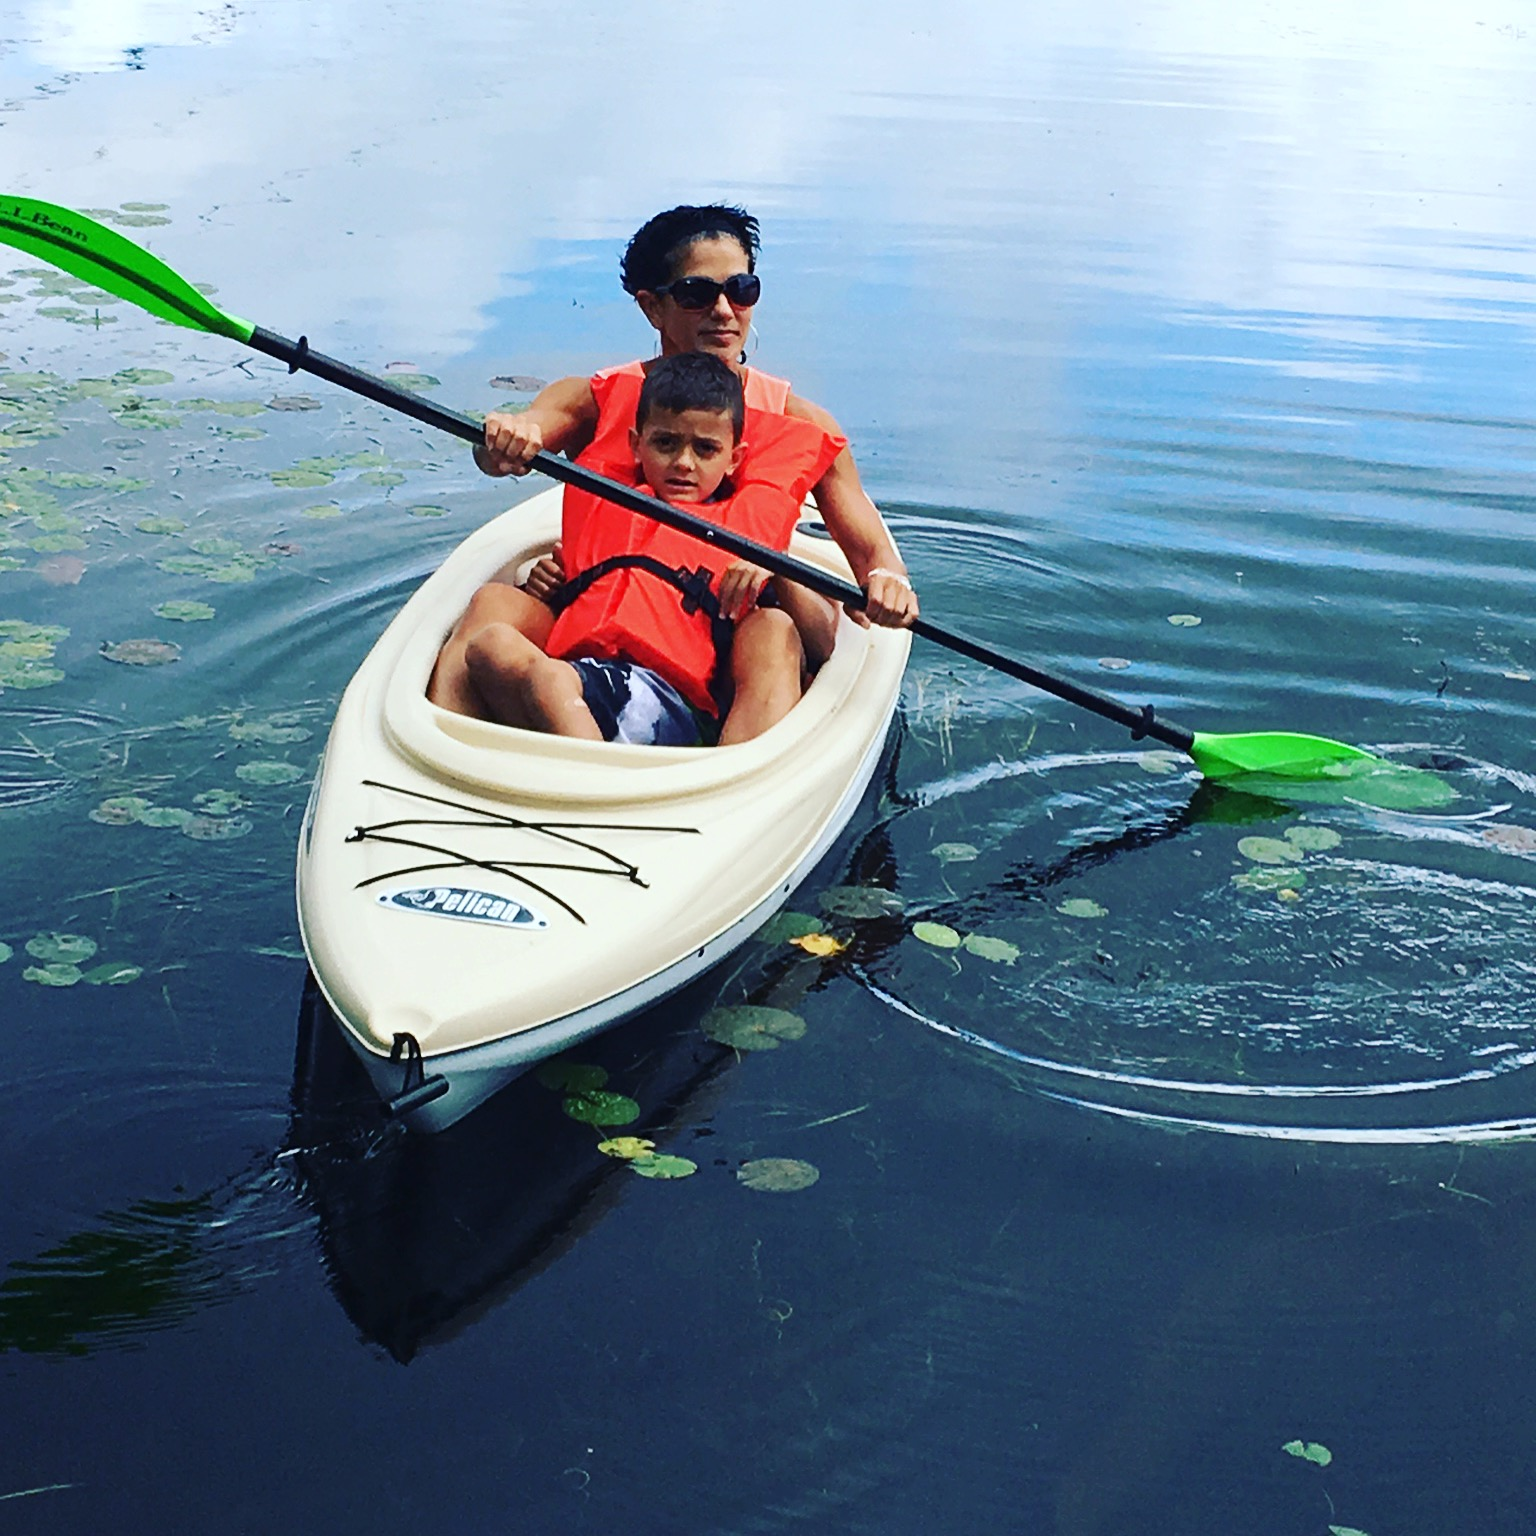 Kayaking with my son on Lake Bomoseen in Vermont. Bonus points if you know which twin it is.